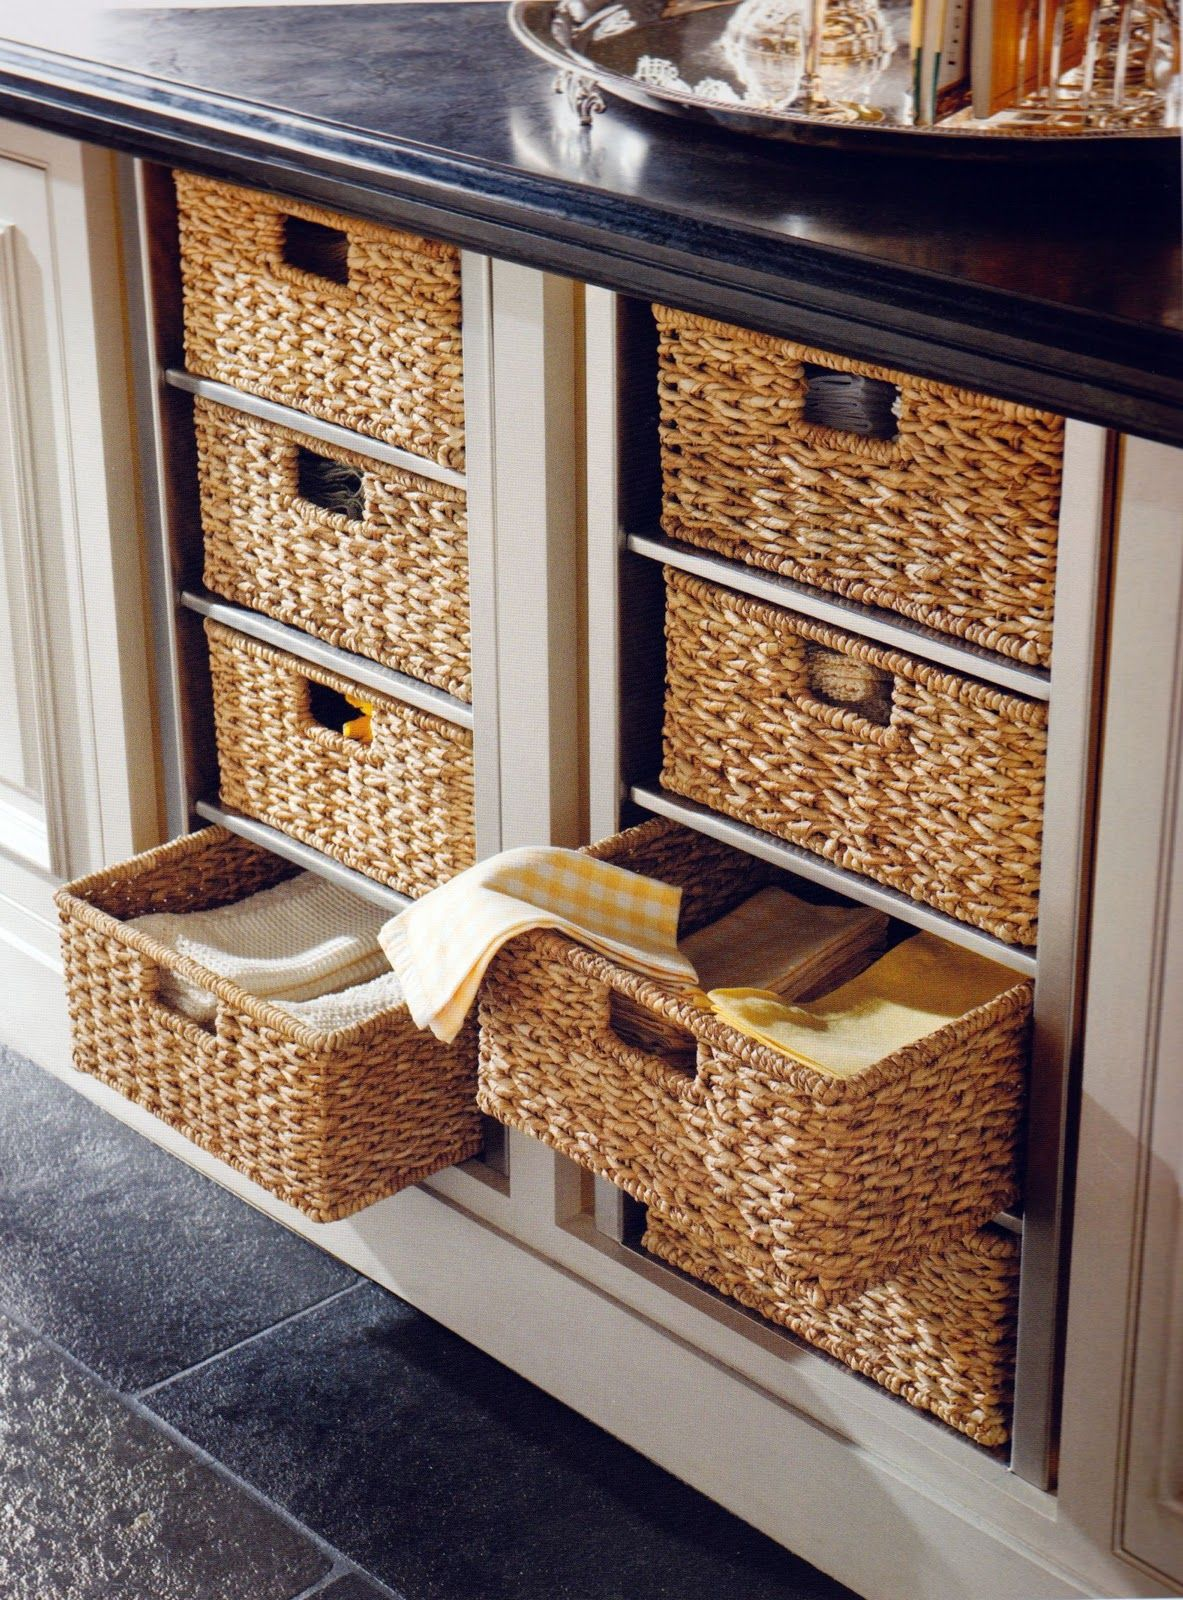 Basket Drawers For Where The Dishwasher Used To Be Good Idea Id Rather Wash Dishes By Hand Tha Kitchen Basket Storage Kitchen Baskets Small Kitchen Storage